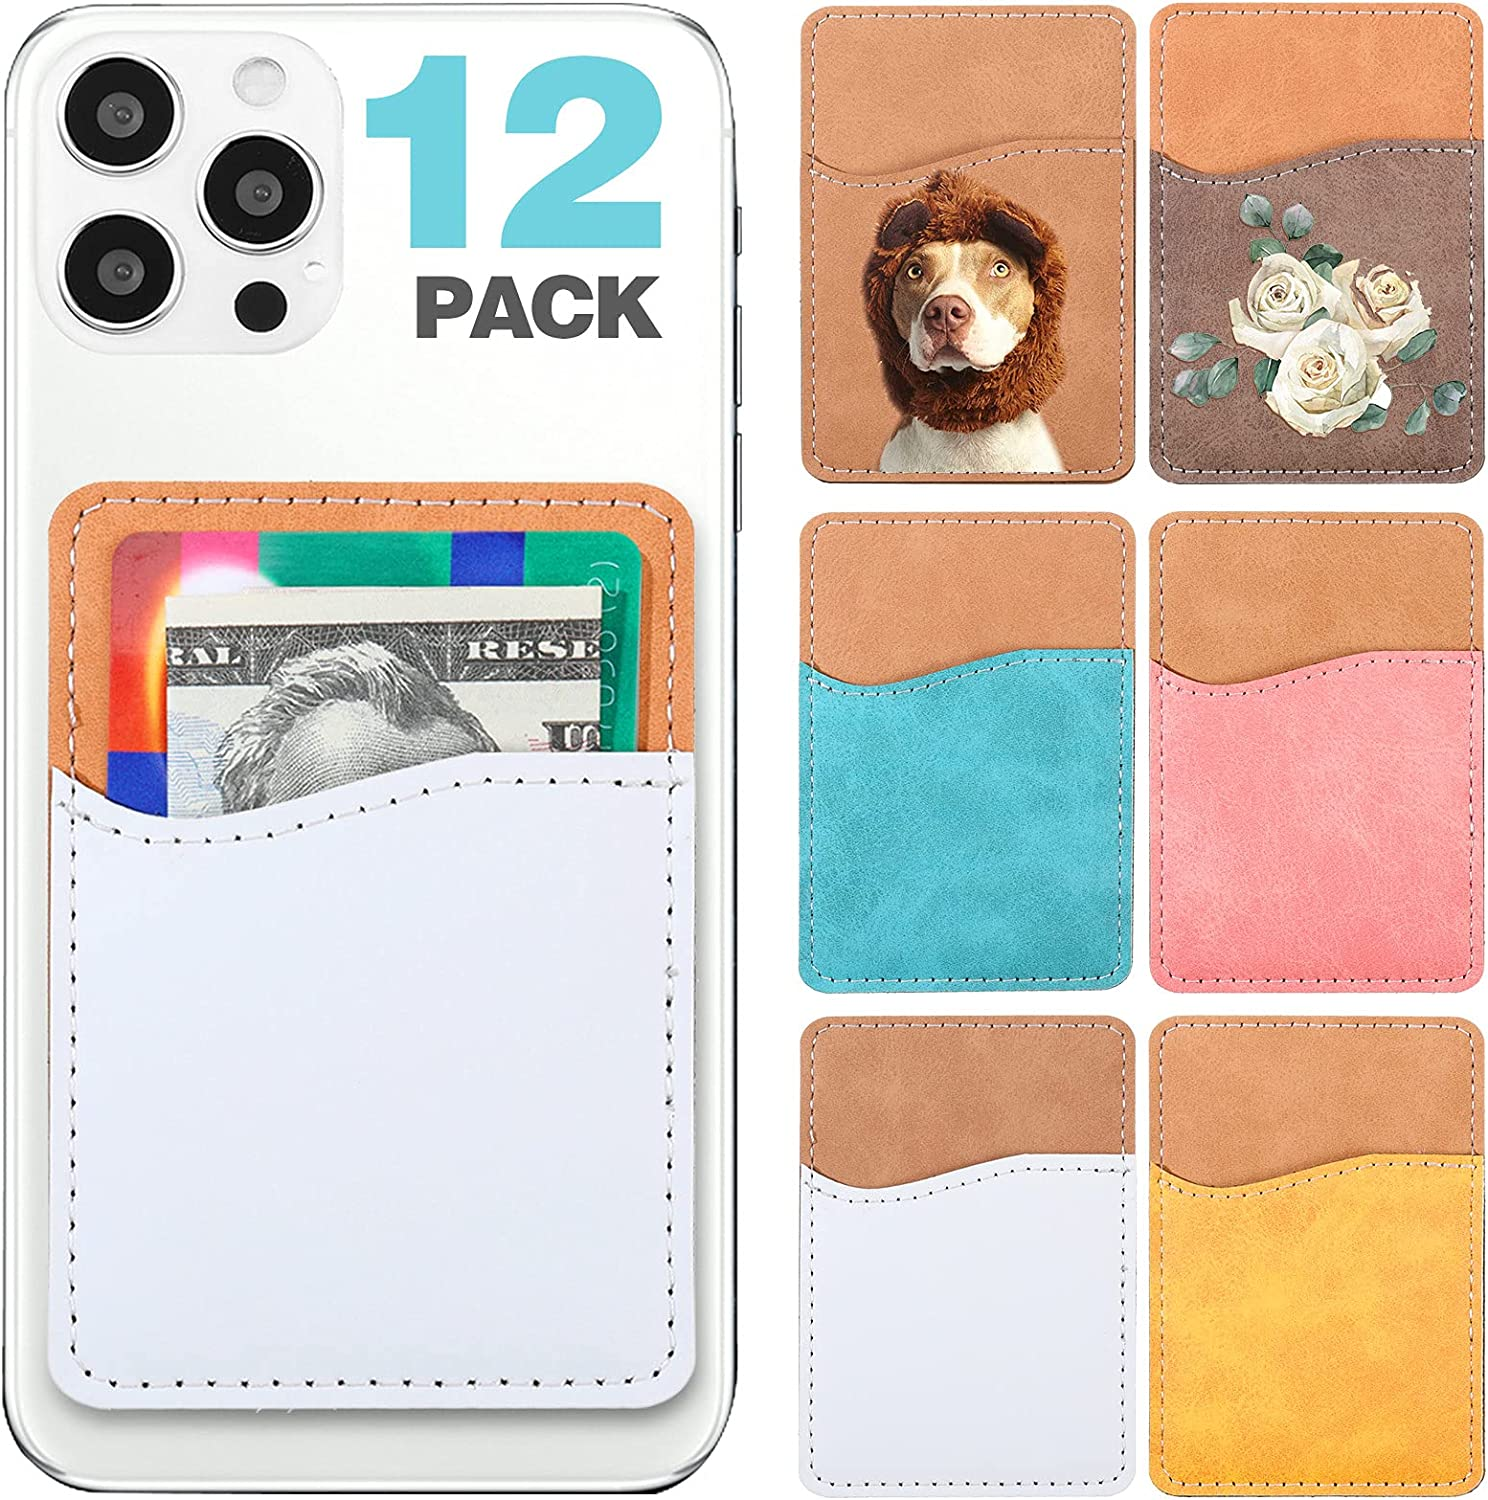 12 Pieces Sublimation Blanks Phone Wallet PU Leather Card Holder Phone Back Pocket ID Card Cell Phone Bag Wallet Slim Case Pouch Sleeve, 6 Colors